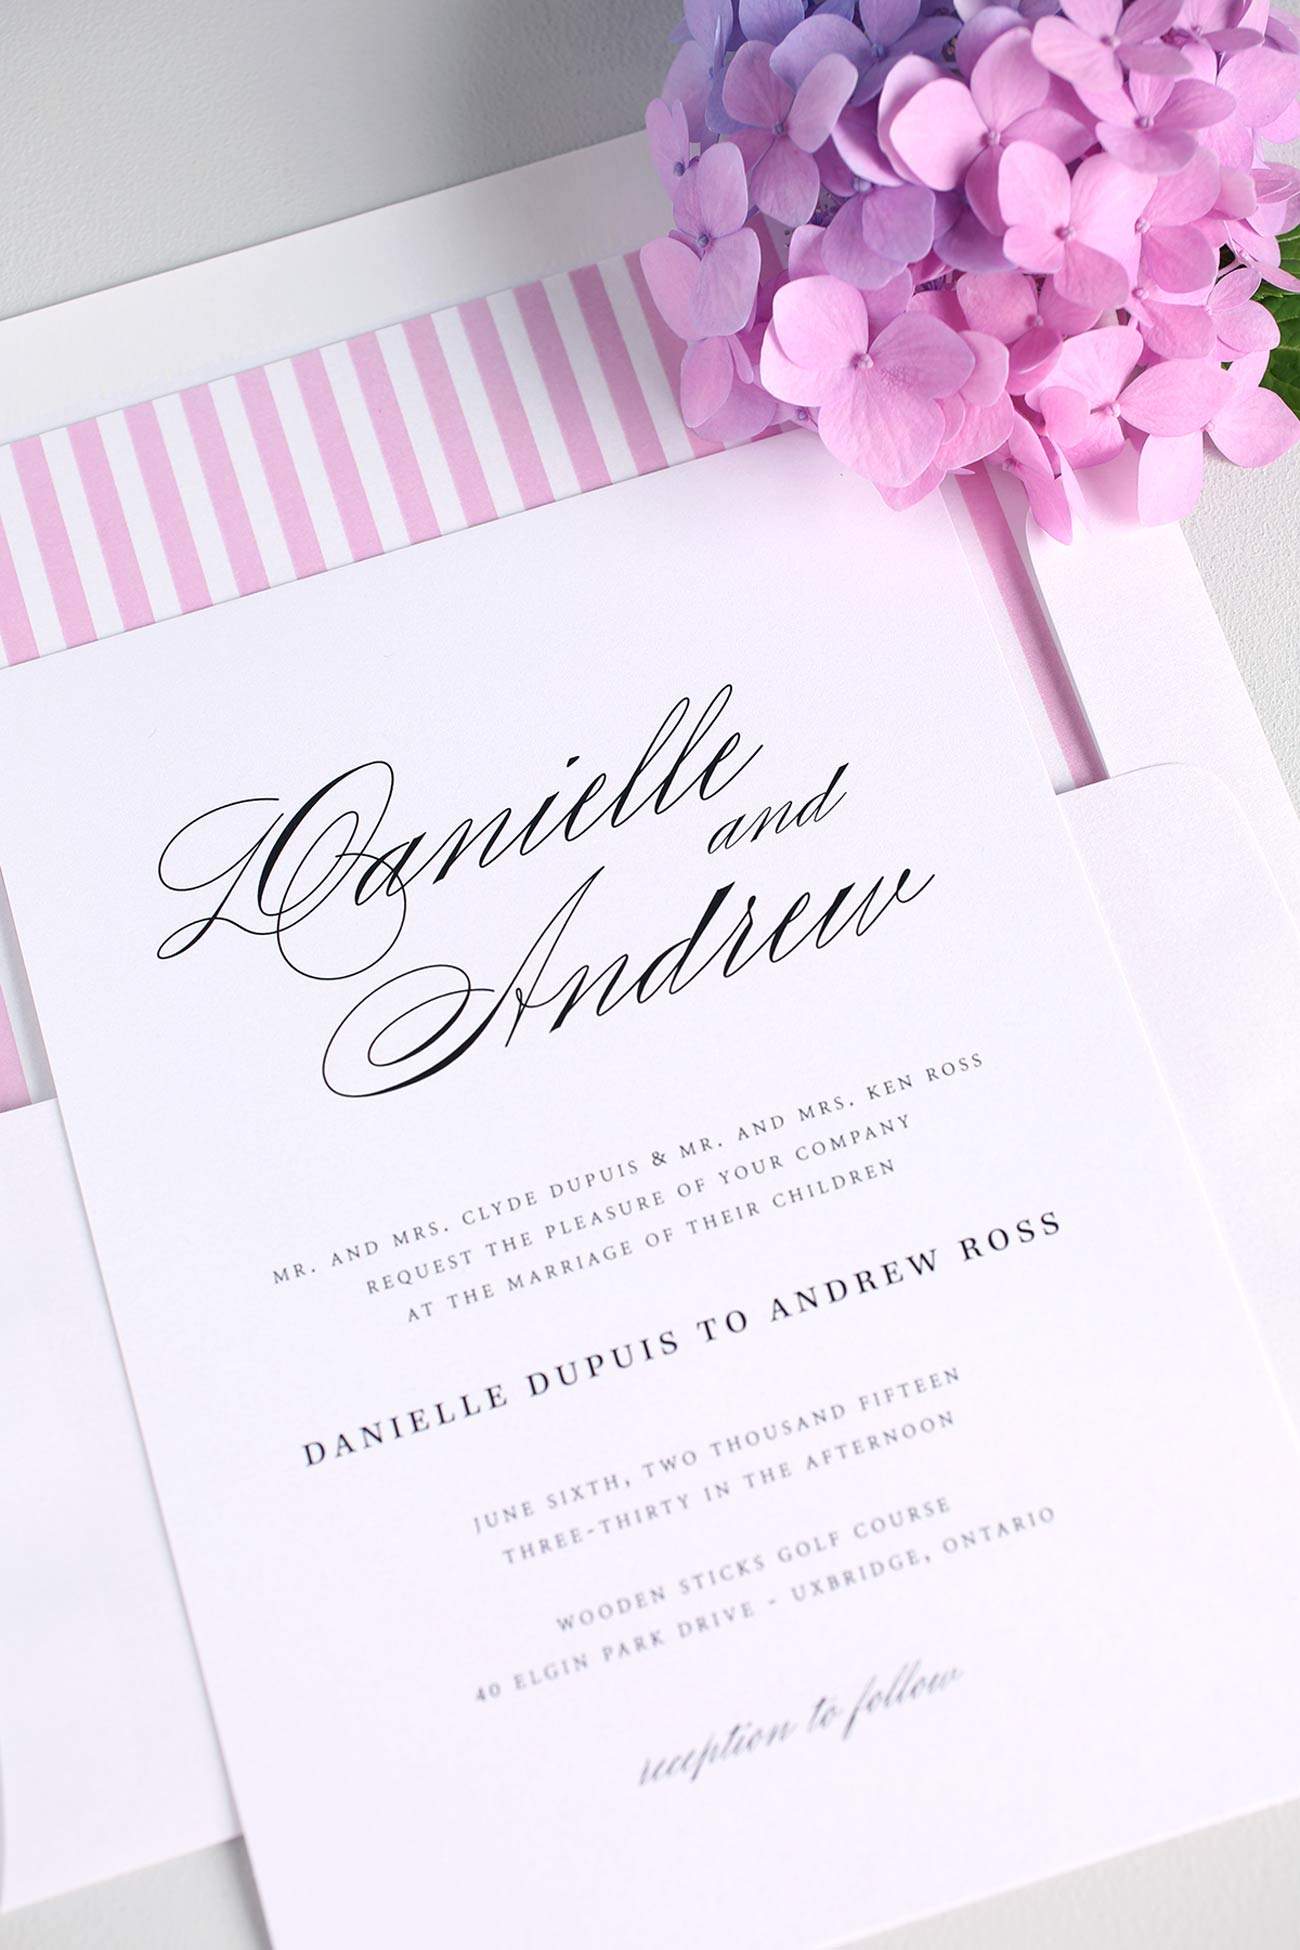 Timeless and classic wedding invitations